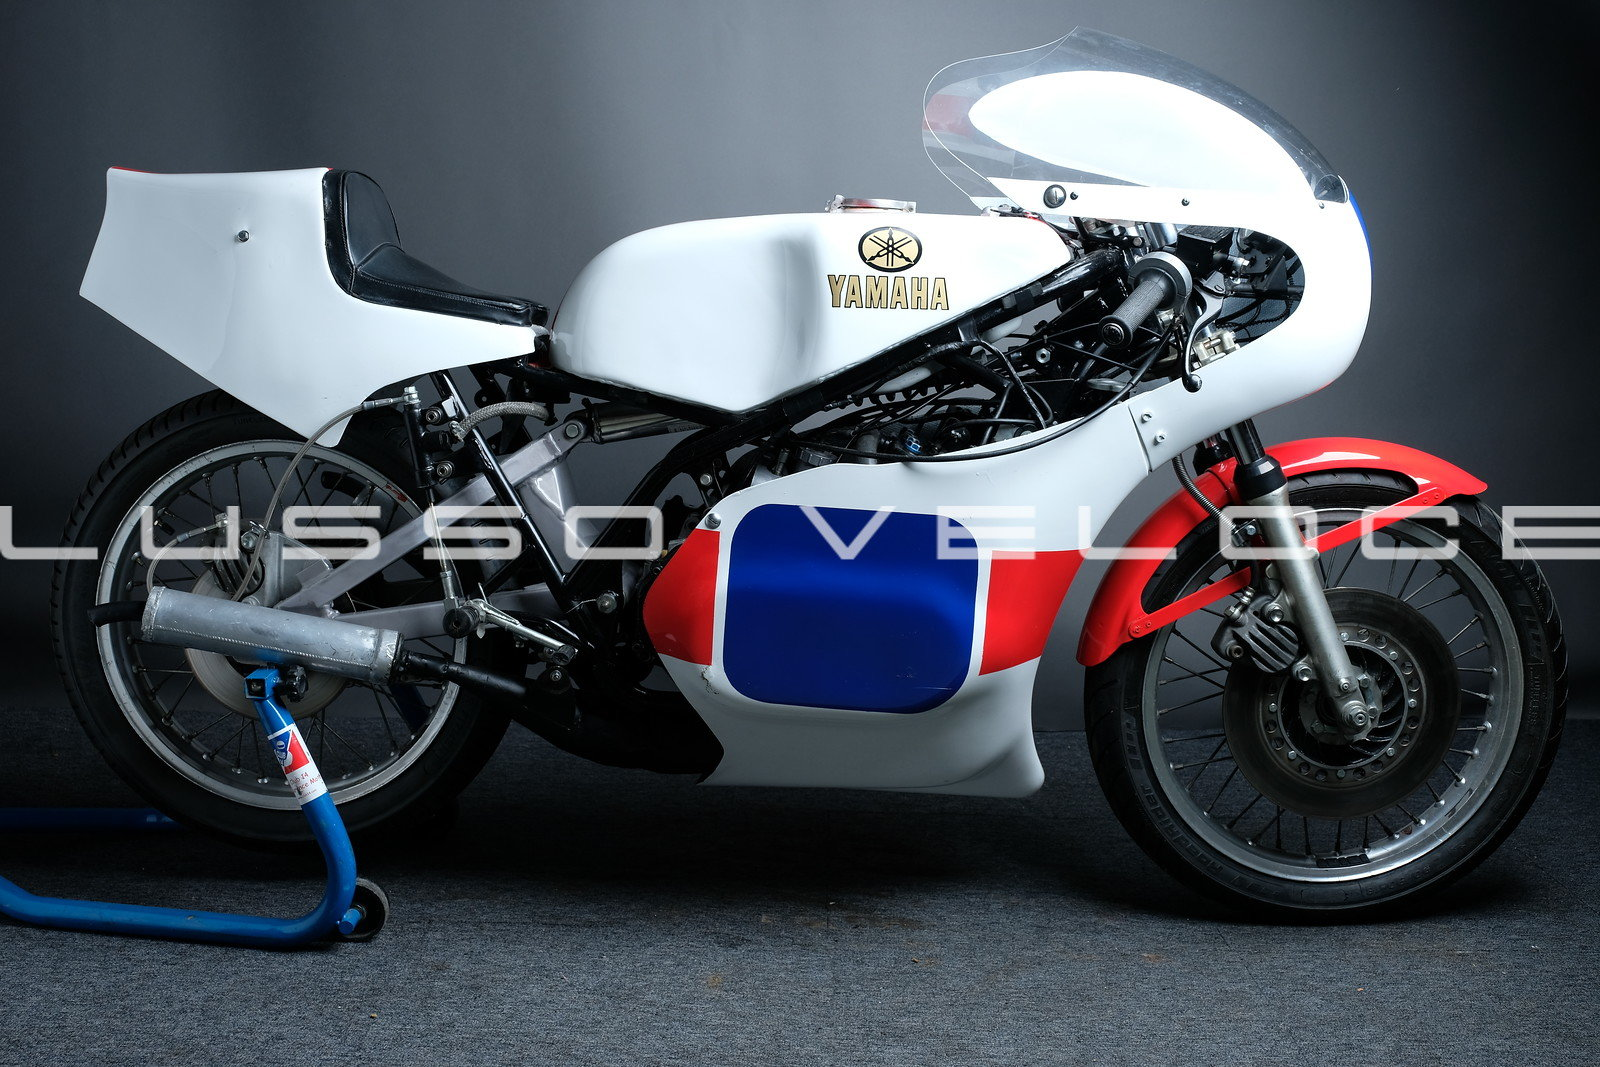 1979 Yamaha TZ 350 F GP Race bike For Sale (picture 1 of 6)